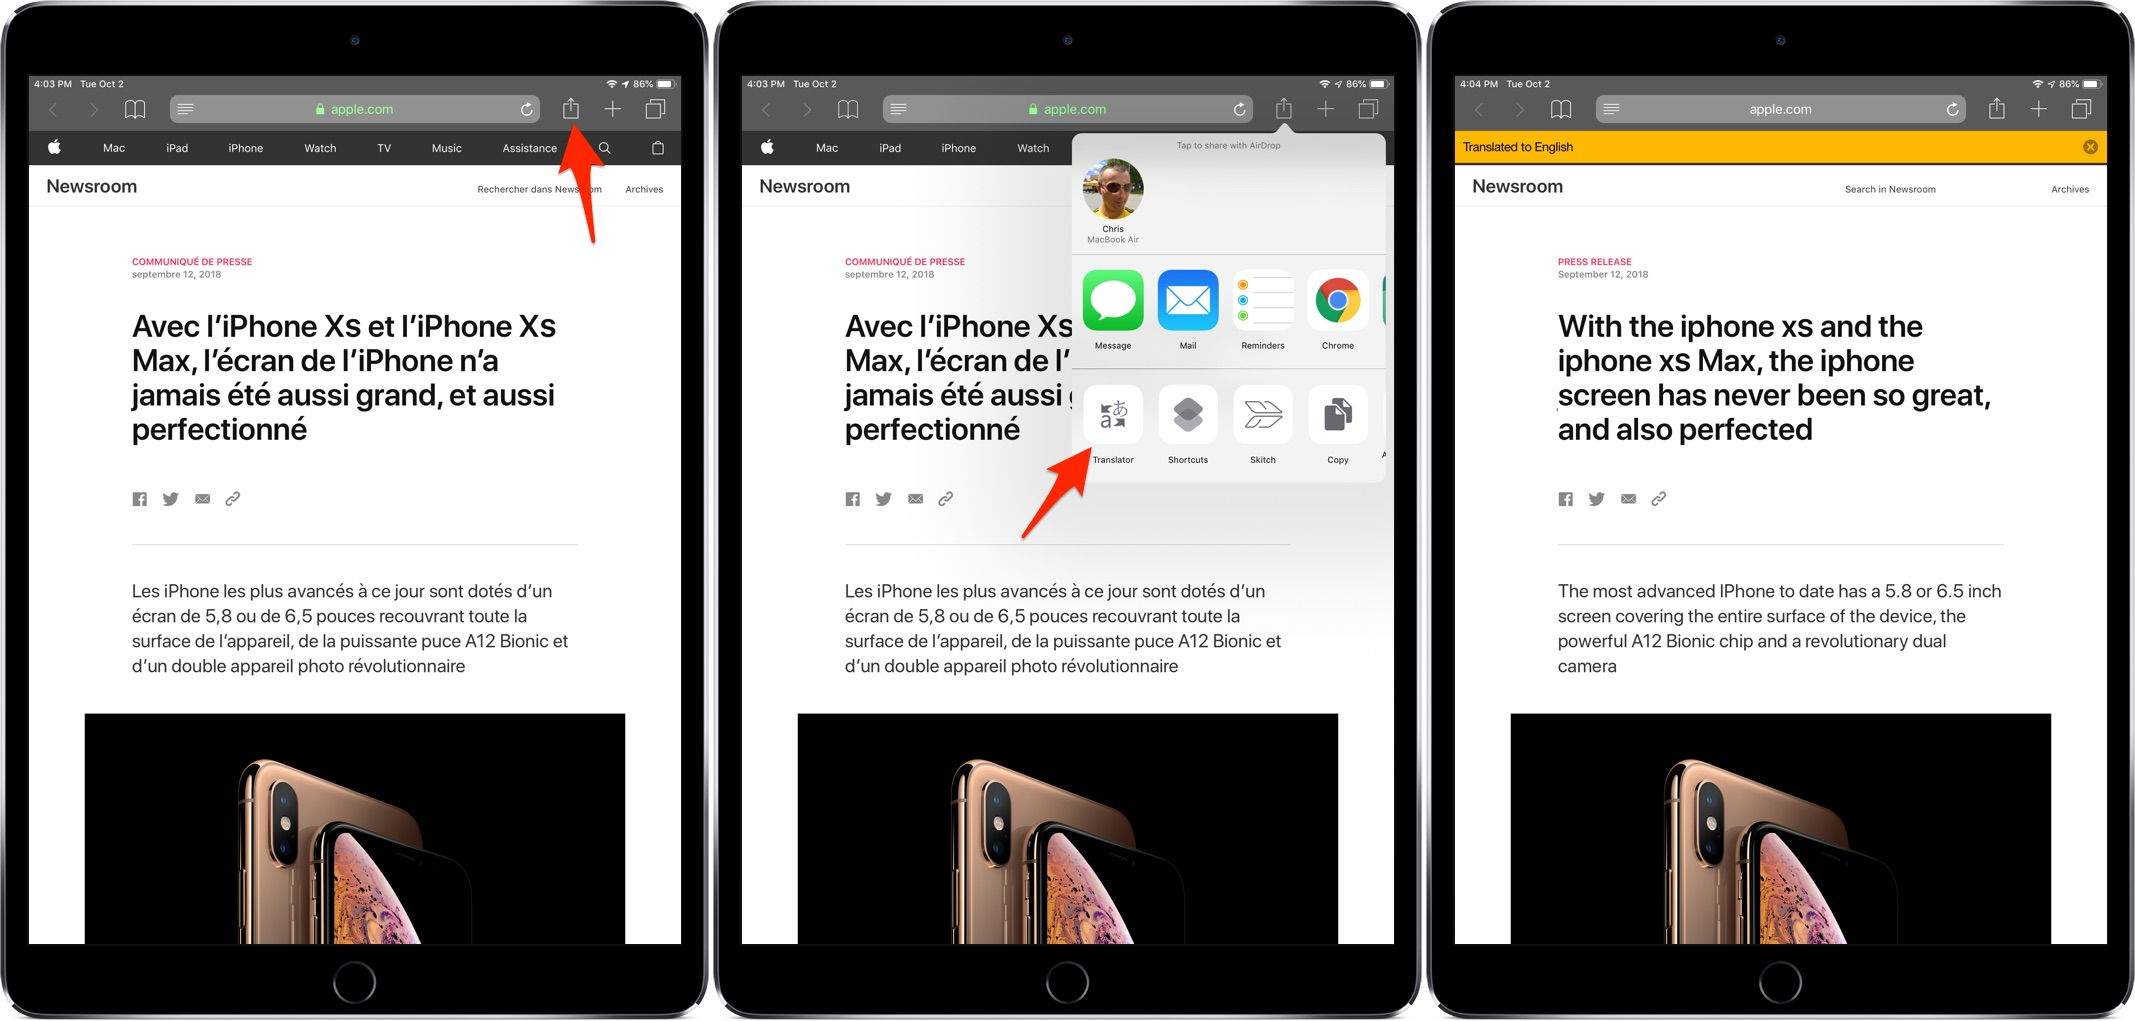 Einrichten Translate How To Translate Webpages In Safari For Iphone And Ipad